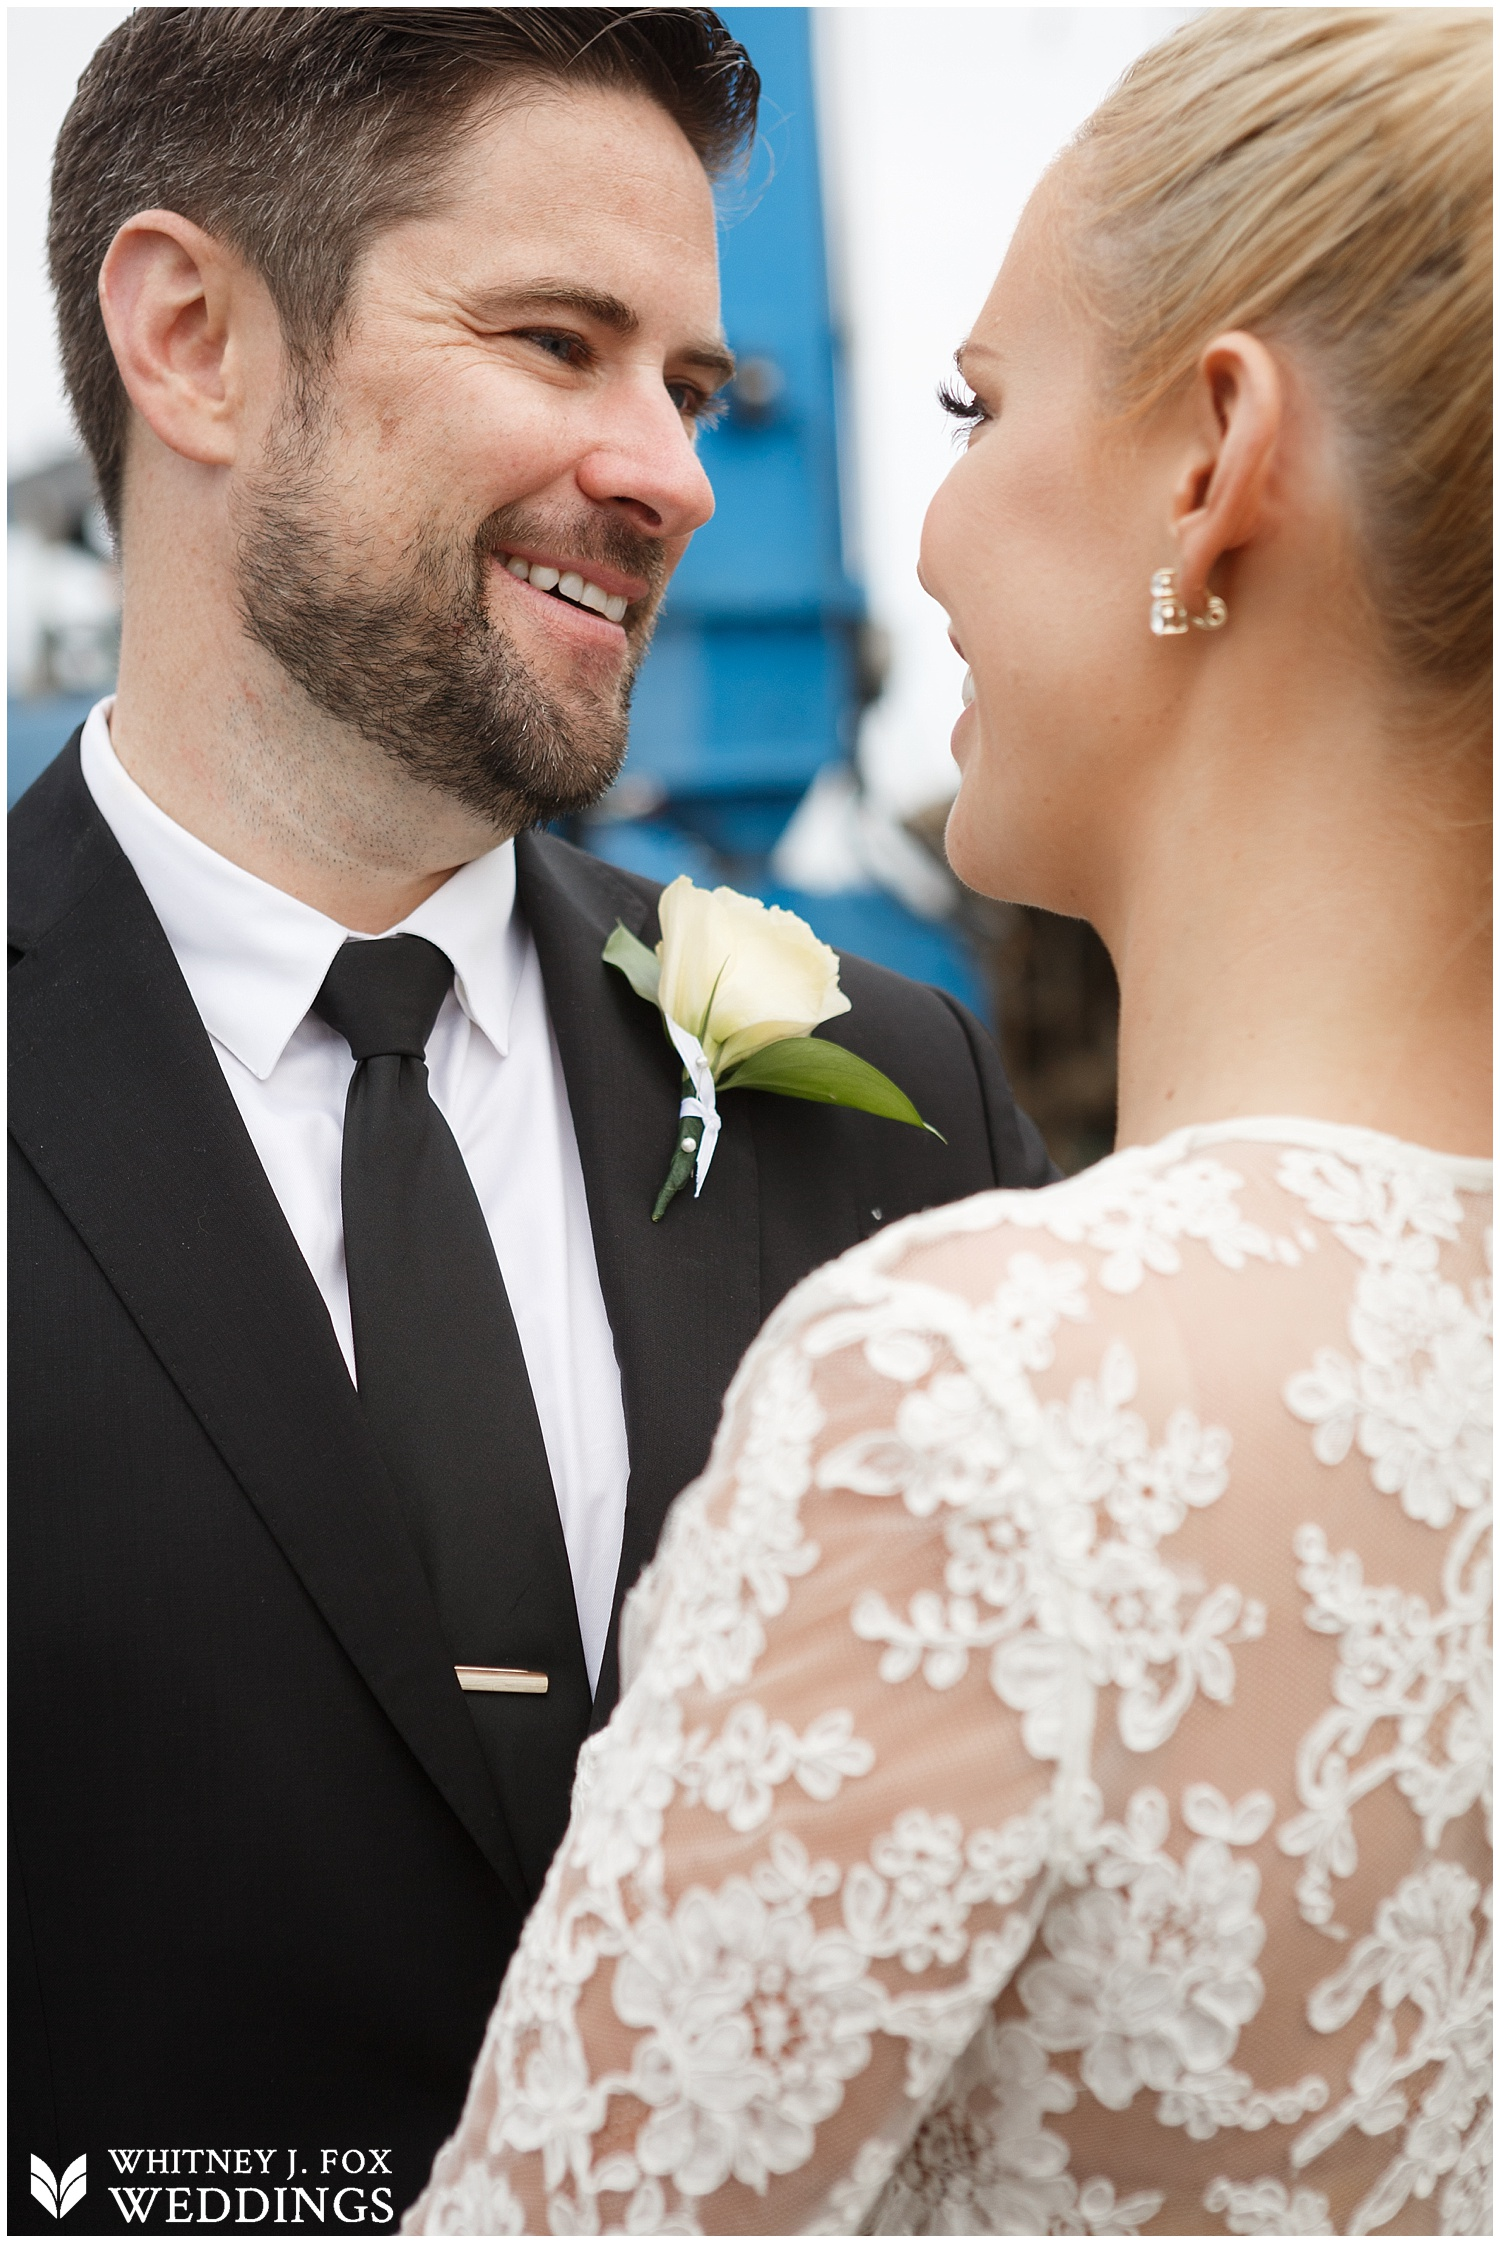 formal_seaside_summer_wedding_dockside_grill_falmouth_maine_photographer_whitney_j_fox_weddings_48.JPG